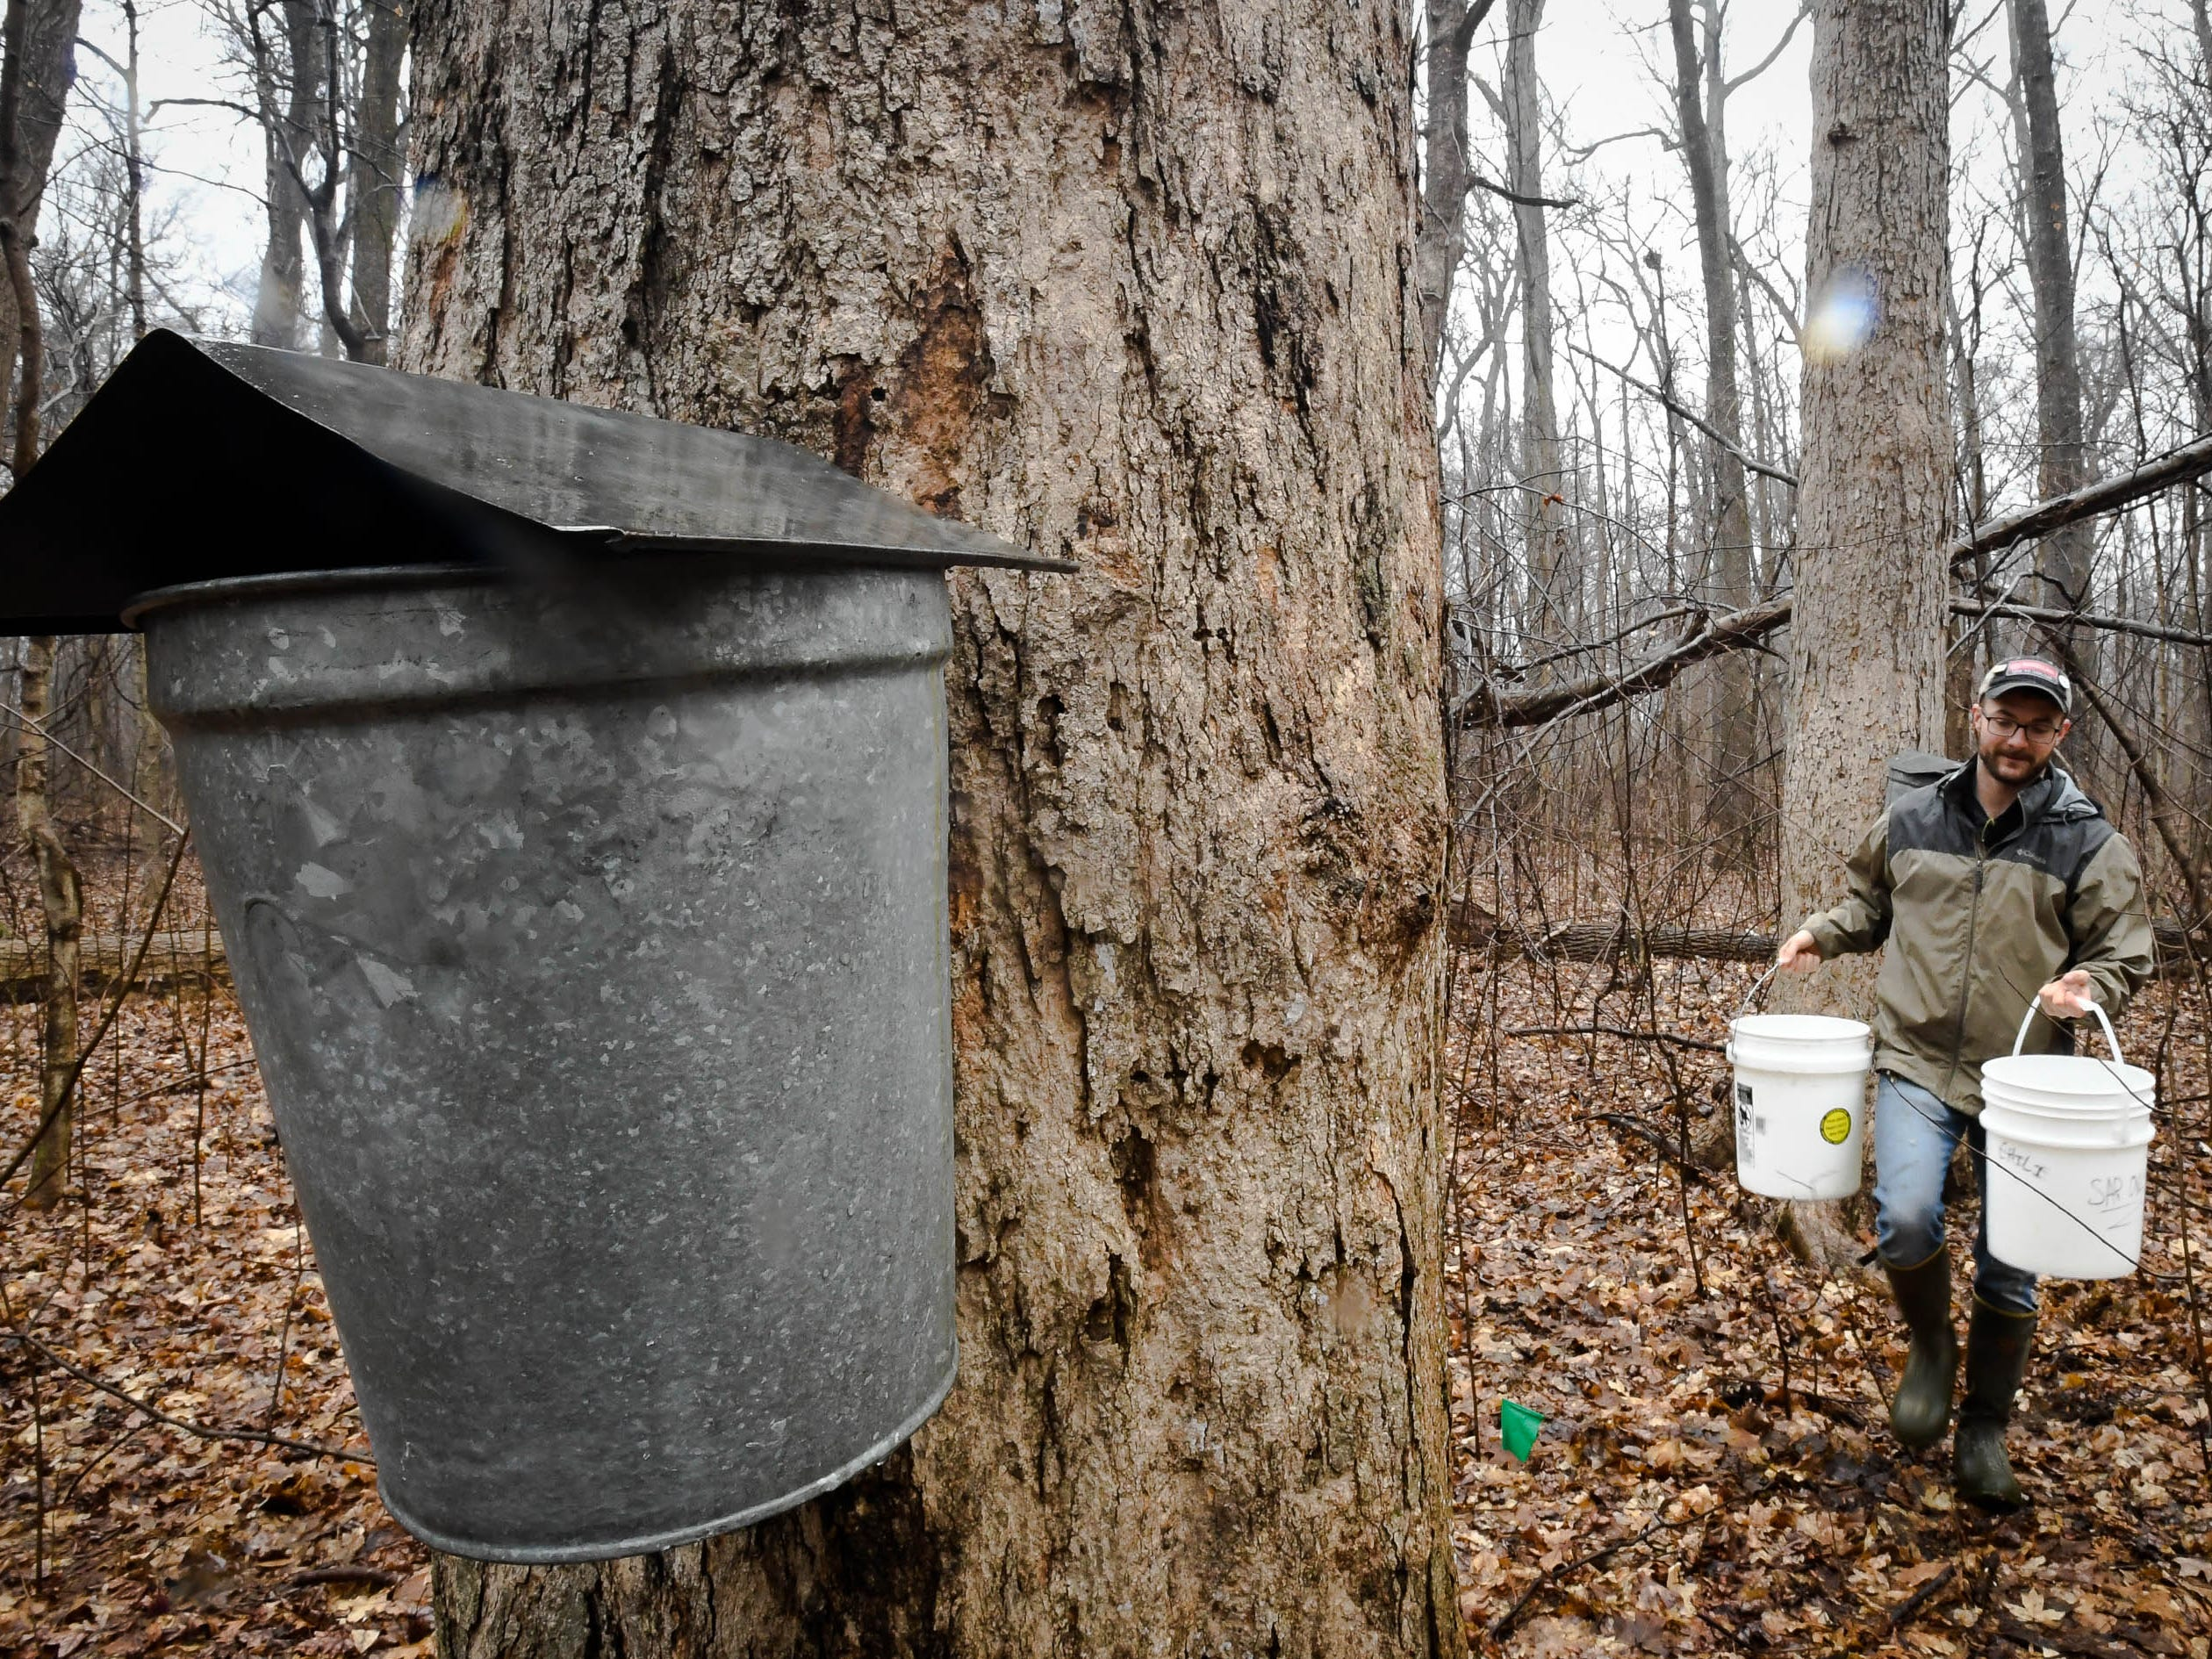 Derek Cox collects sugar maple sap from the trees at the Wesselman Woods Nature Preserve Tuesday, cooking down sap from the preserve's sugar maple trees February 5, 2019.  The sap is boiled down to make syrup for the park's Annual Sugarbush Festival. In its 40th year, held March 2nd and 3rd from 7 a.m. to 1 p.m., the festival features a hardy all you can eat pancake breakfast and guided tours in the park to see how the sap is collected and cooked down.